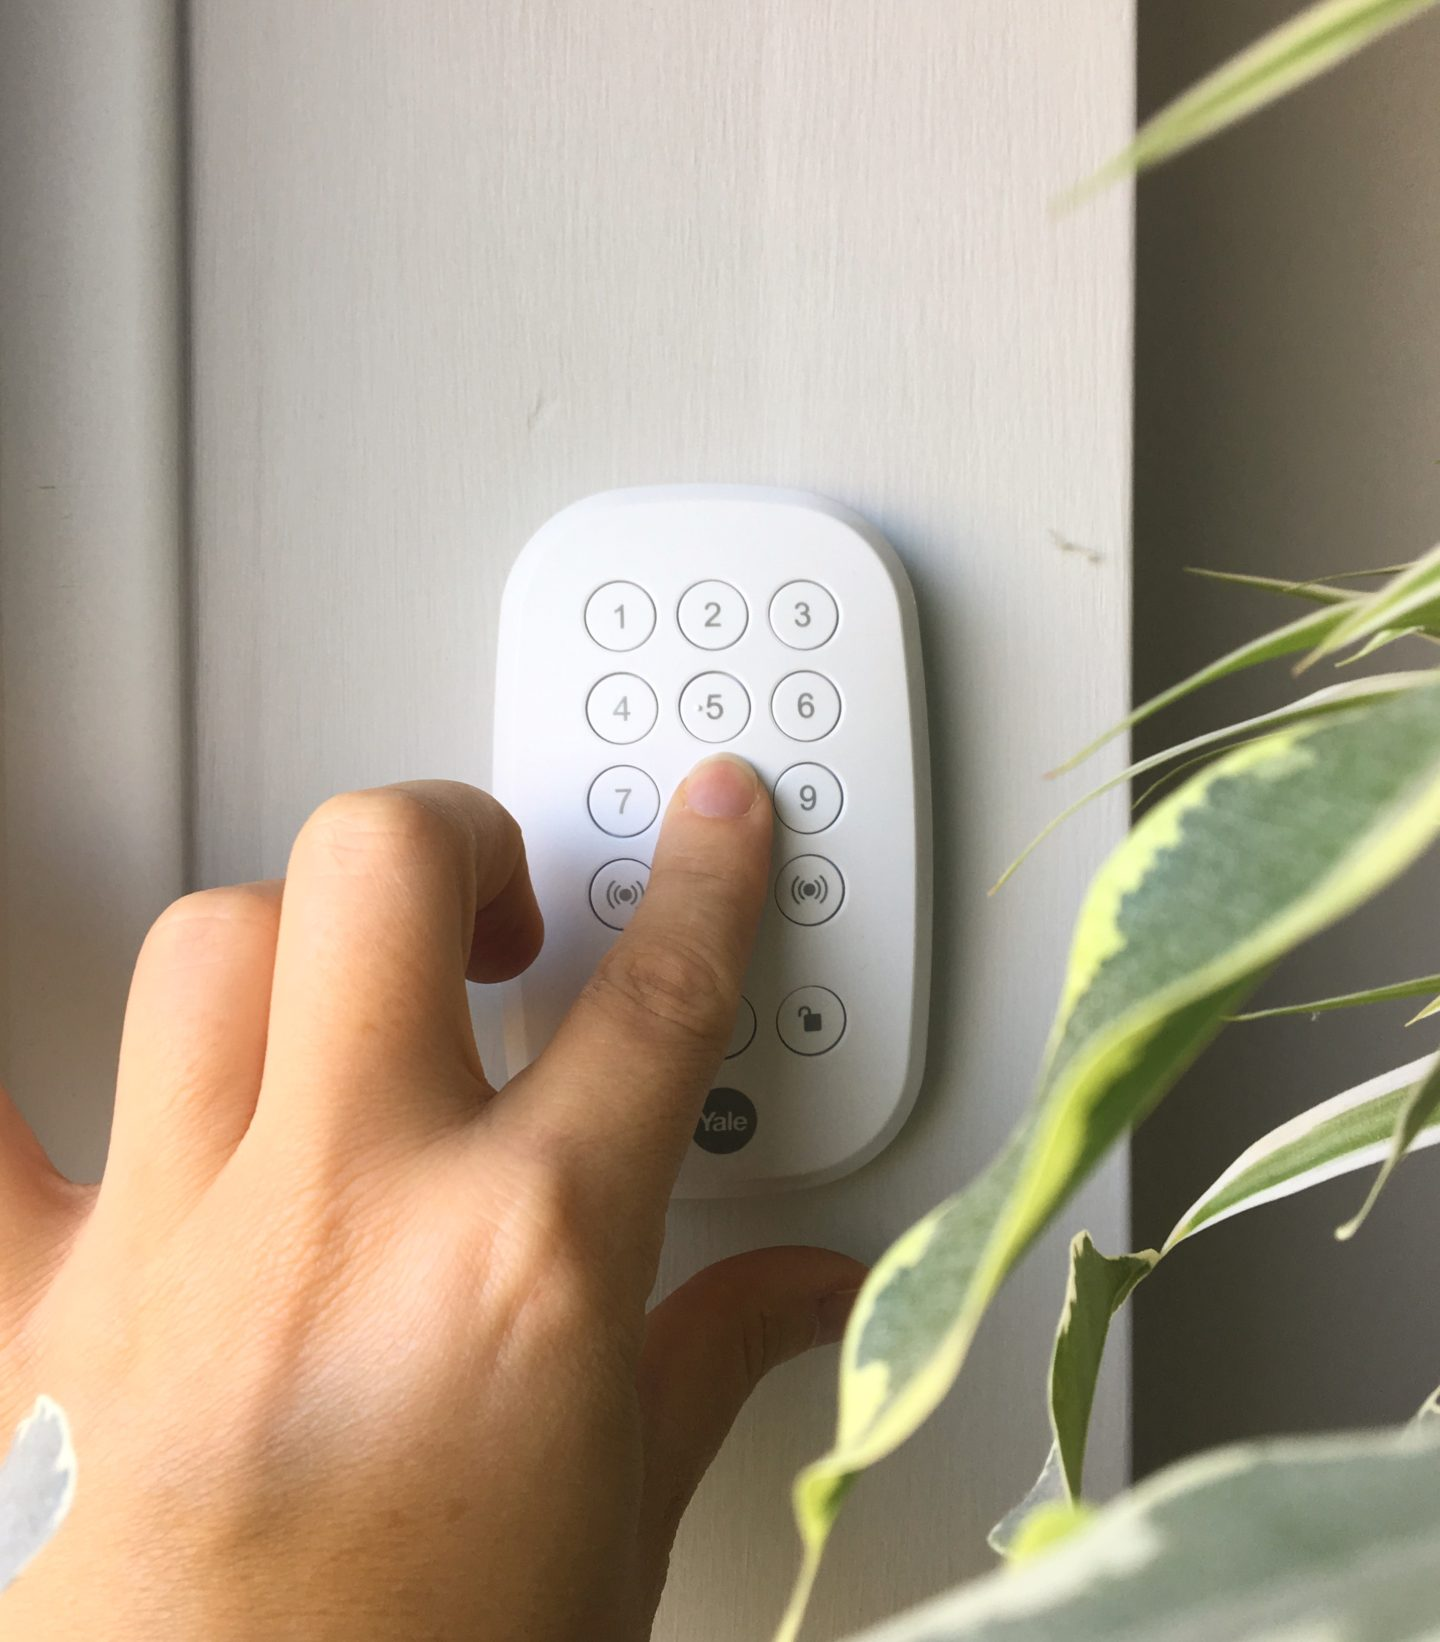 Yale Sync alarm system review